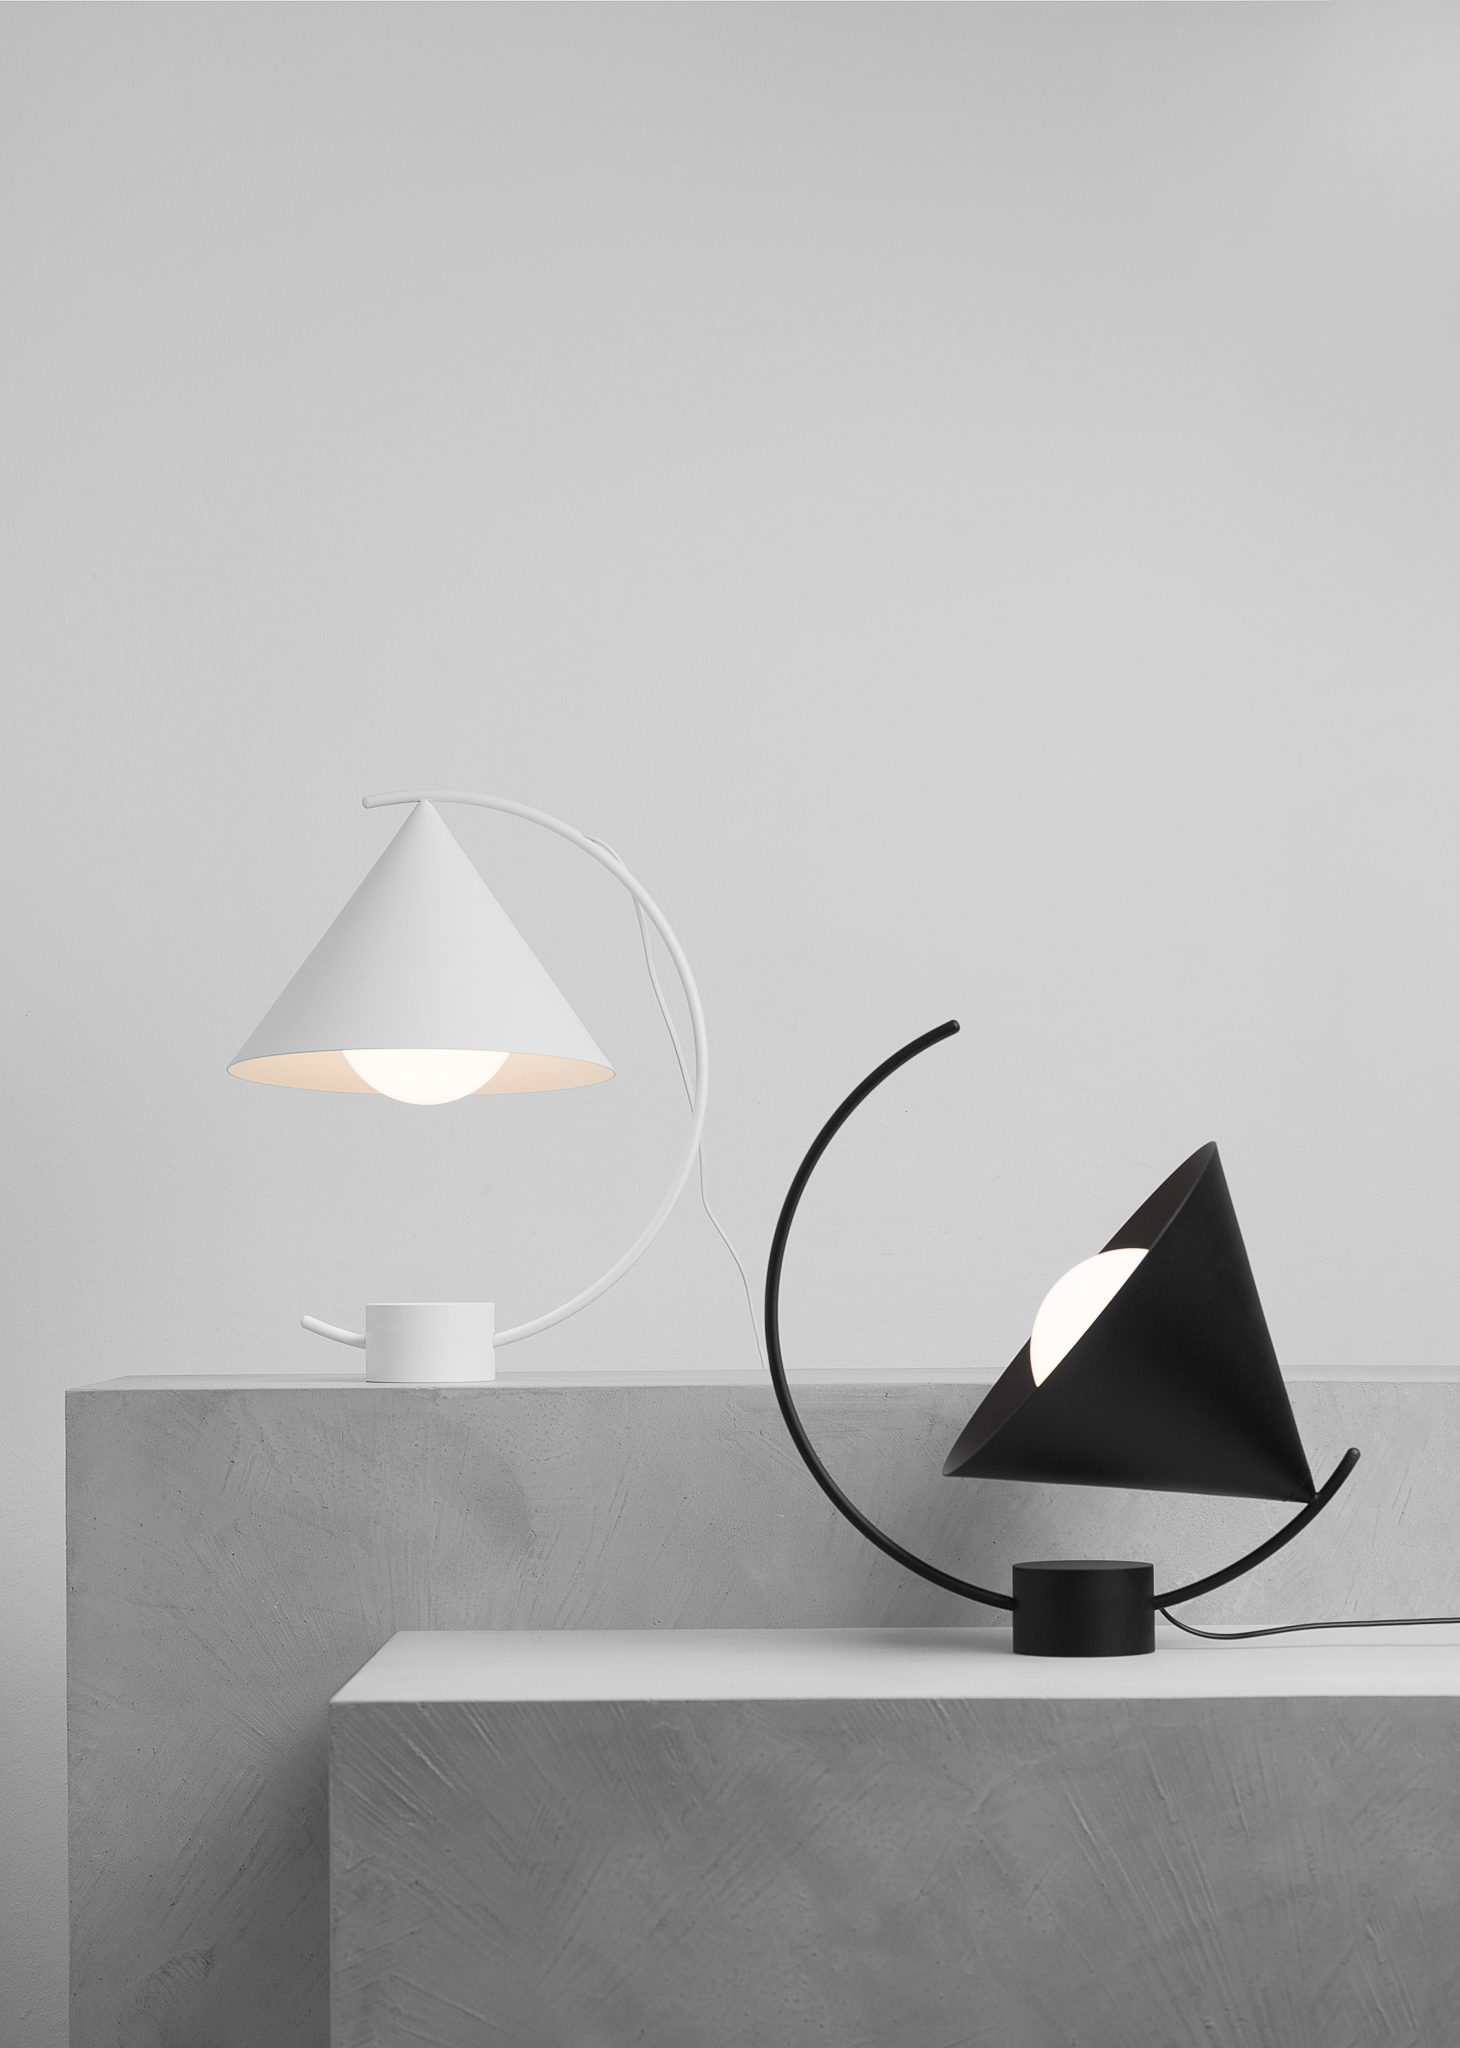 Meridian lamp - designed by Regular Company